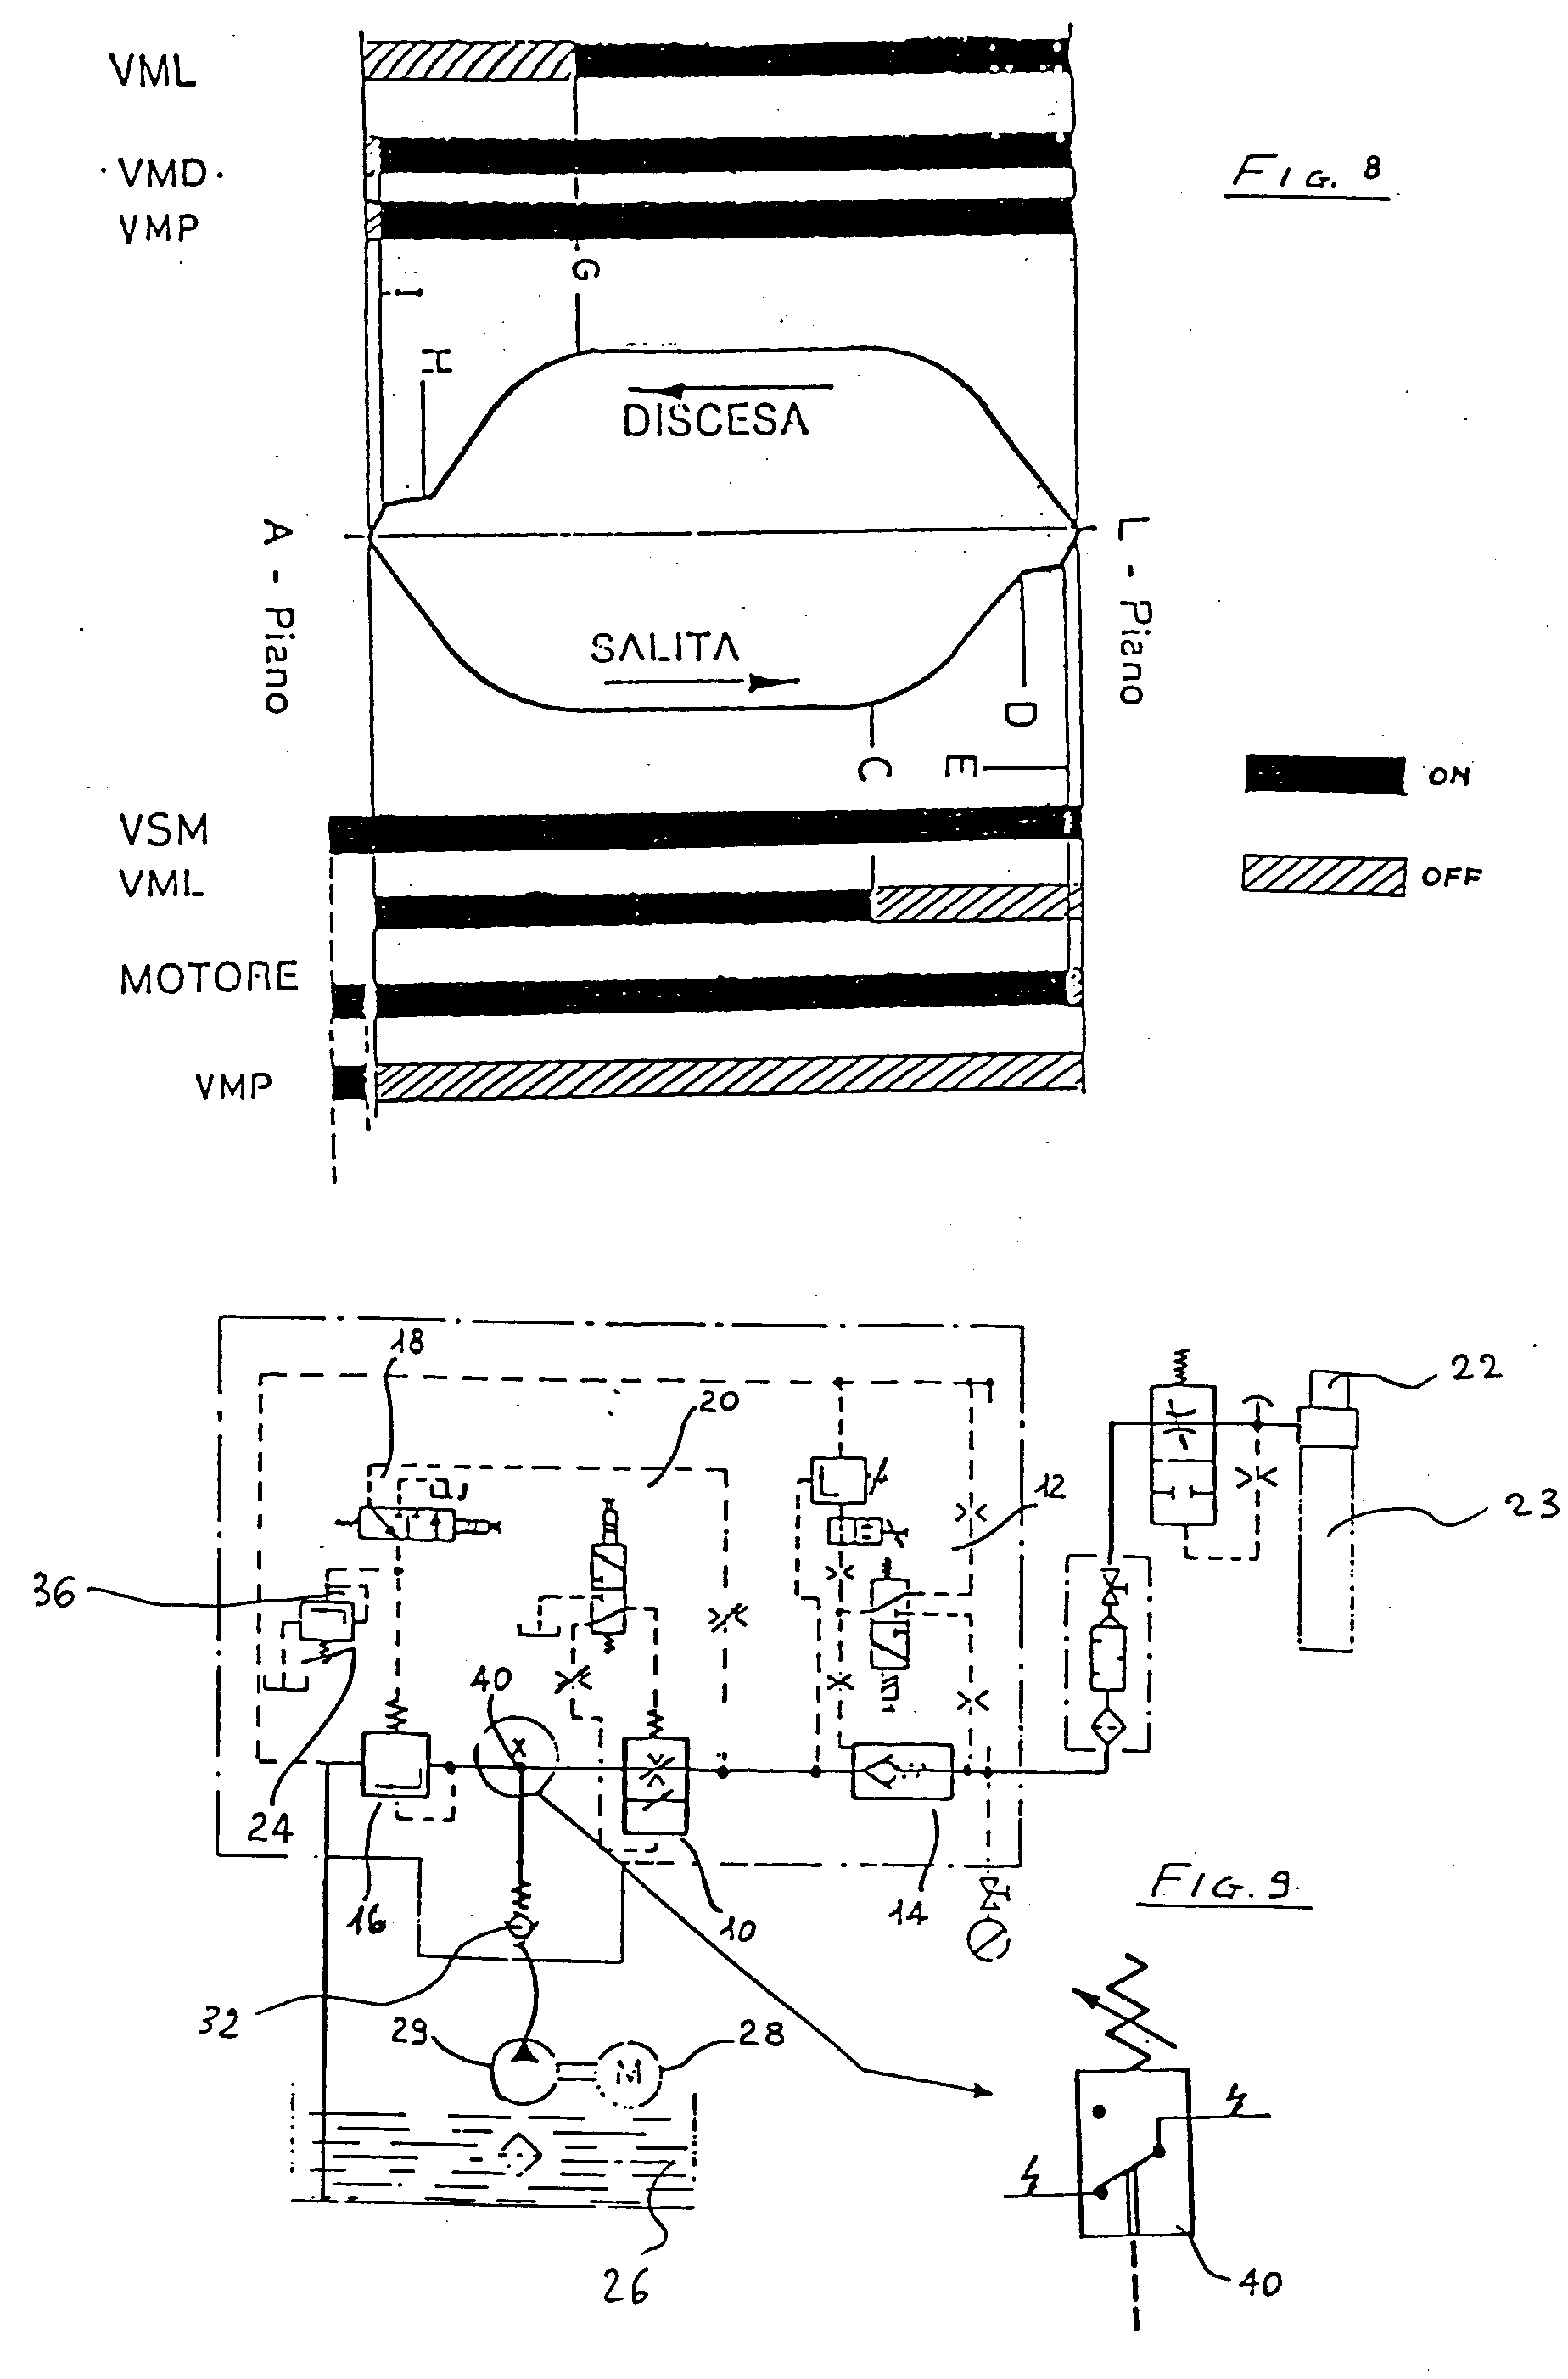 Direct Vent Wiring Diagram likewise Porsche 911 Alternator Wiring Diagram also Addressable Fire Alarm System Diagrams Wiring together with Application Diagram Visio Wiring Diagrams furthermore Wireless Security Alarm Block Diagram. on smoke detector repair